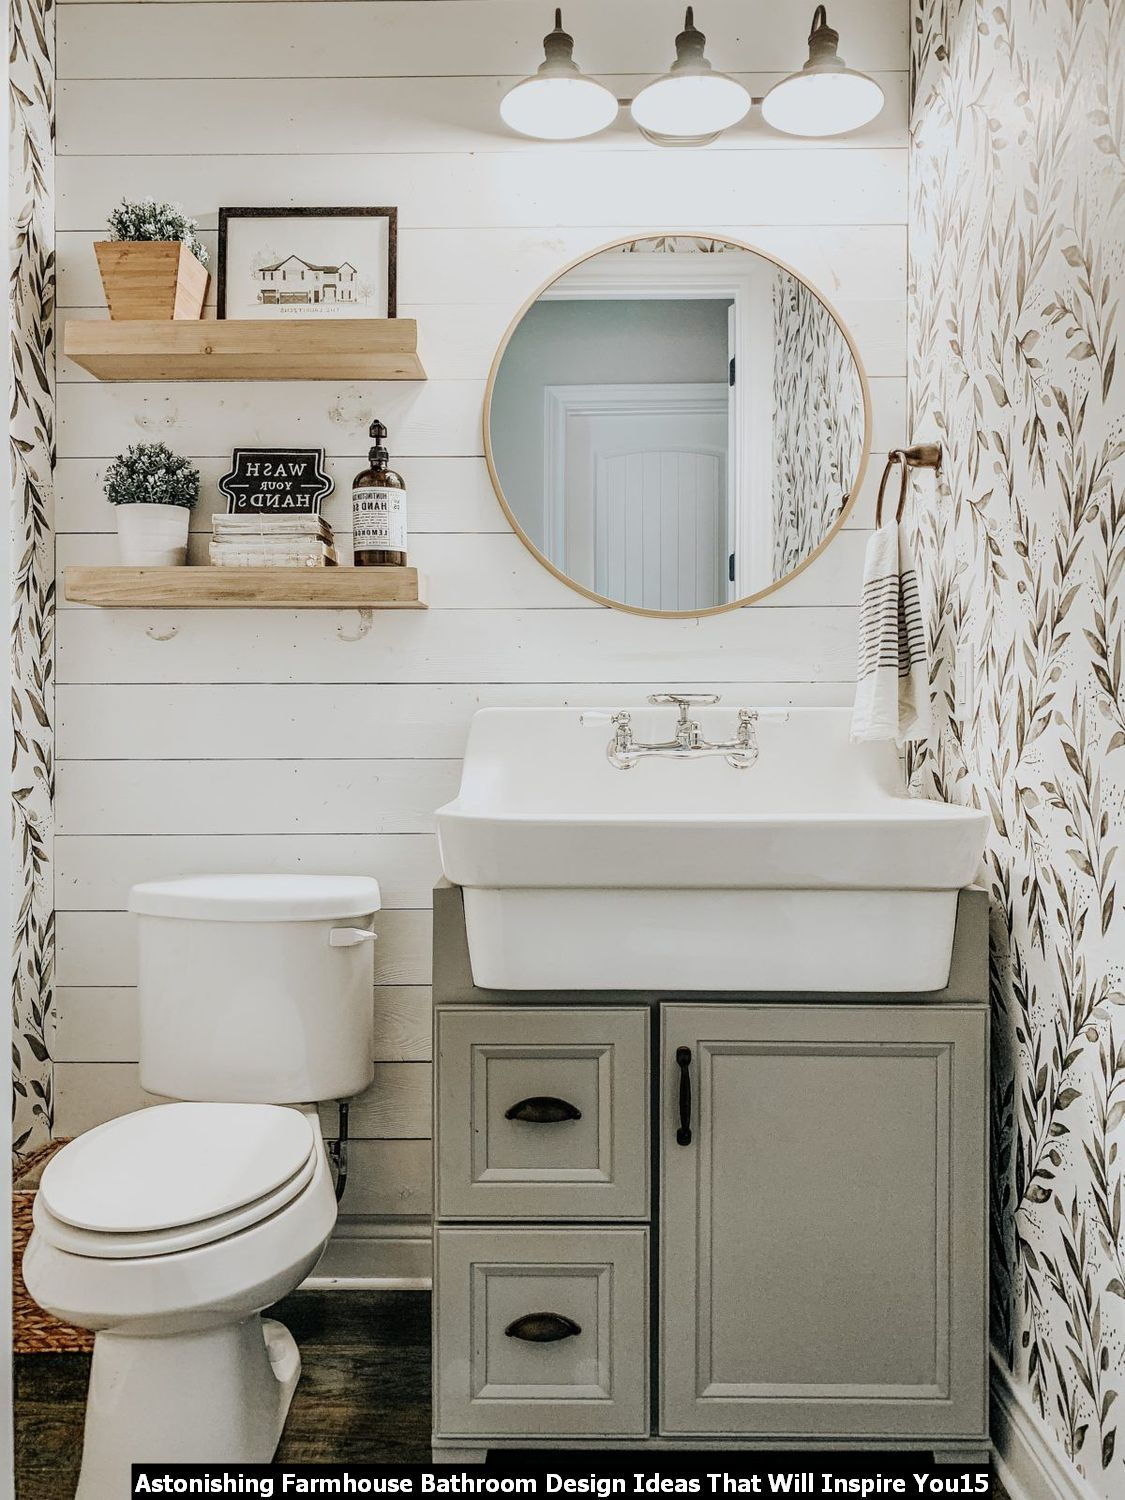 Diy 20 Astonishing Farmhouse Bathroom Design Ideas That Will Inspire You In 2020 Bathroom Remodel Designs Minimalist Home Decor Guest Bathroom Design